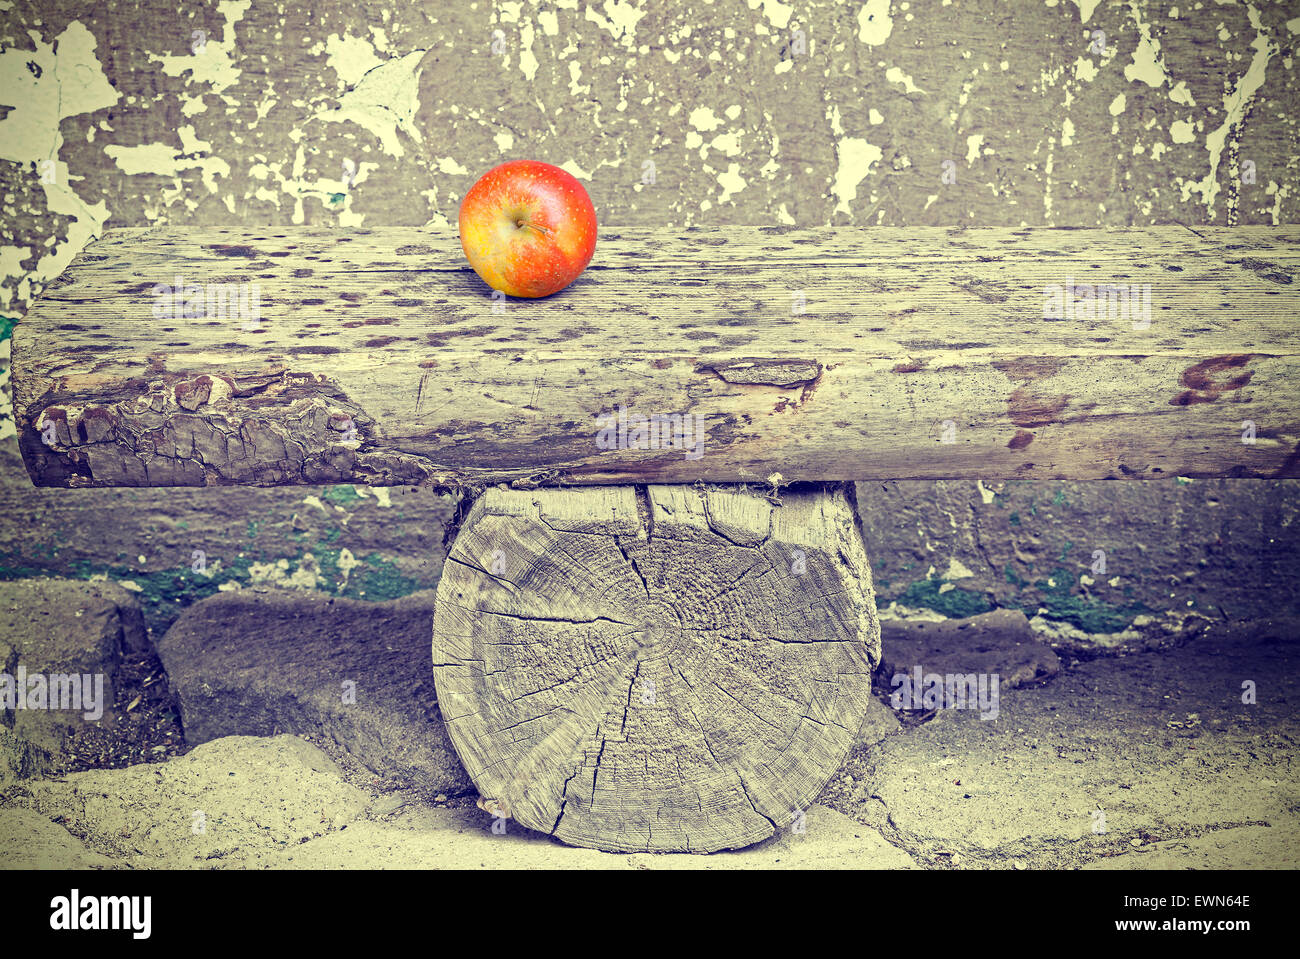 Ripe apple on old wooden bench, retro toned time passing and aging concept. - Stock Image